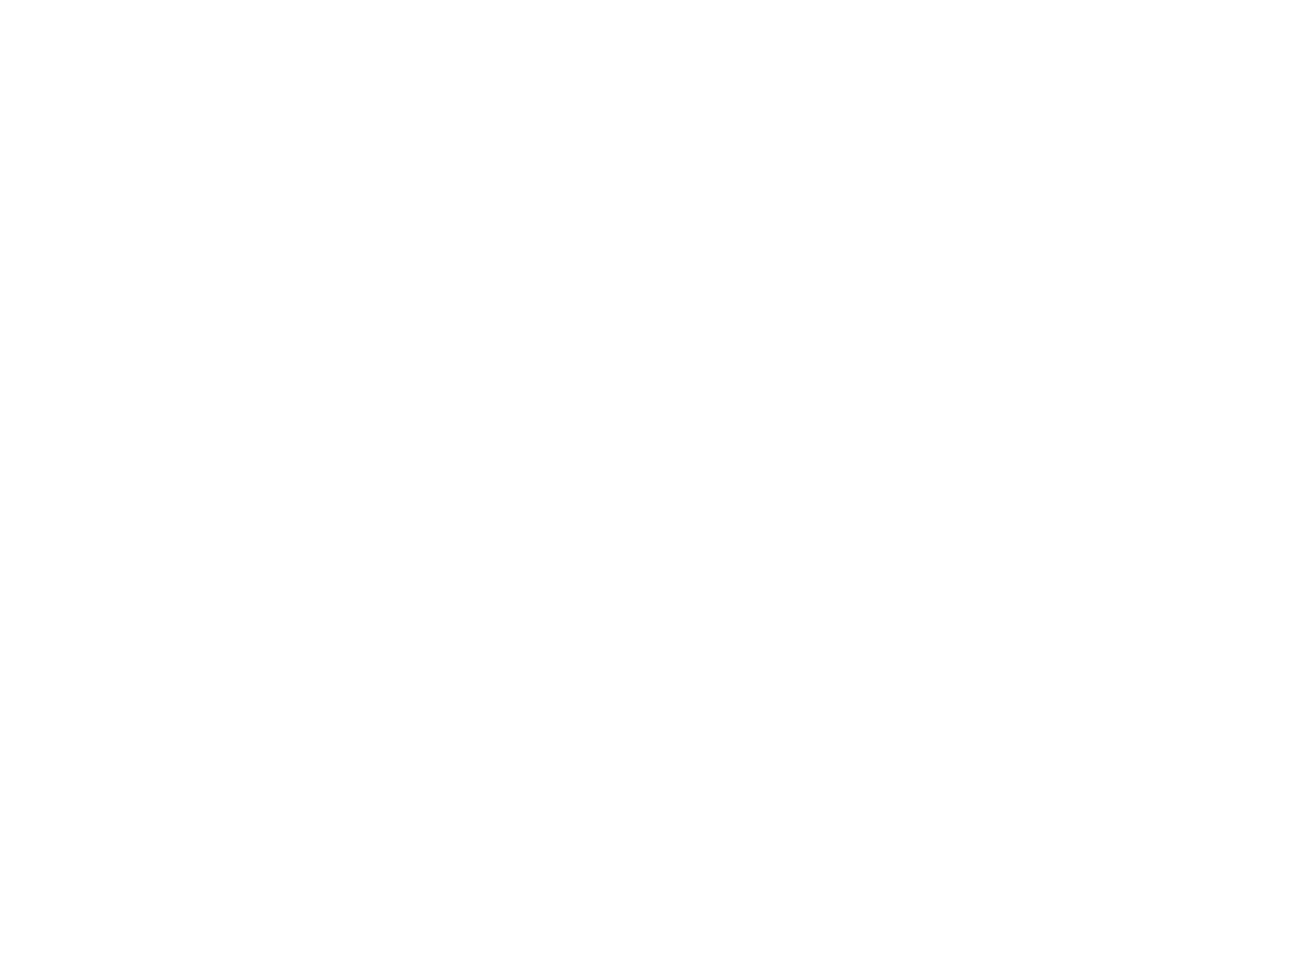 Welcoming our daughters script font no background.png